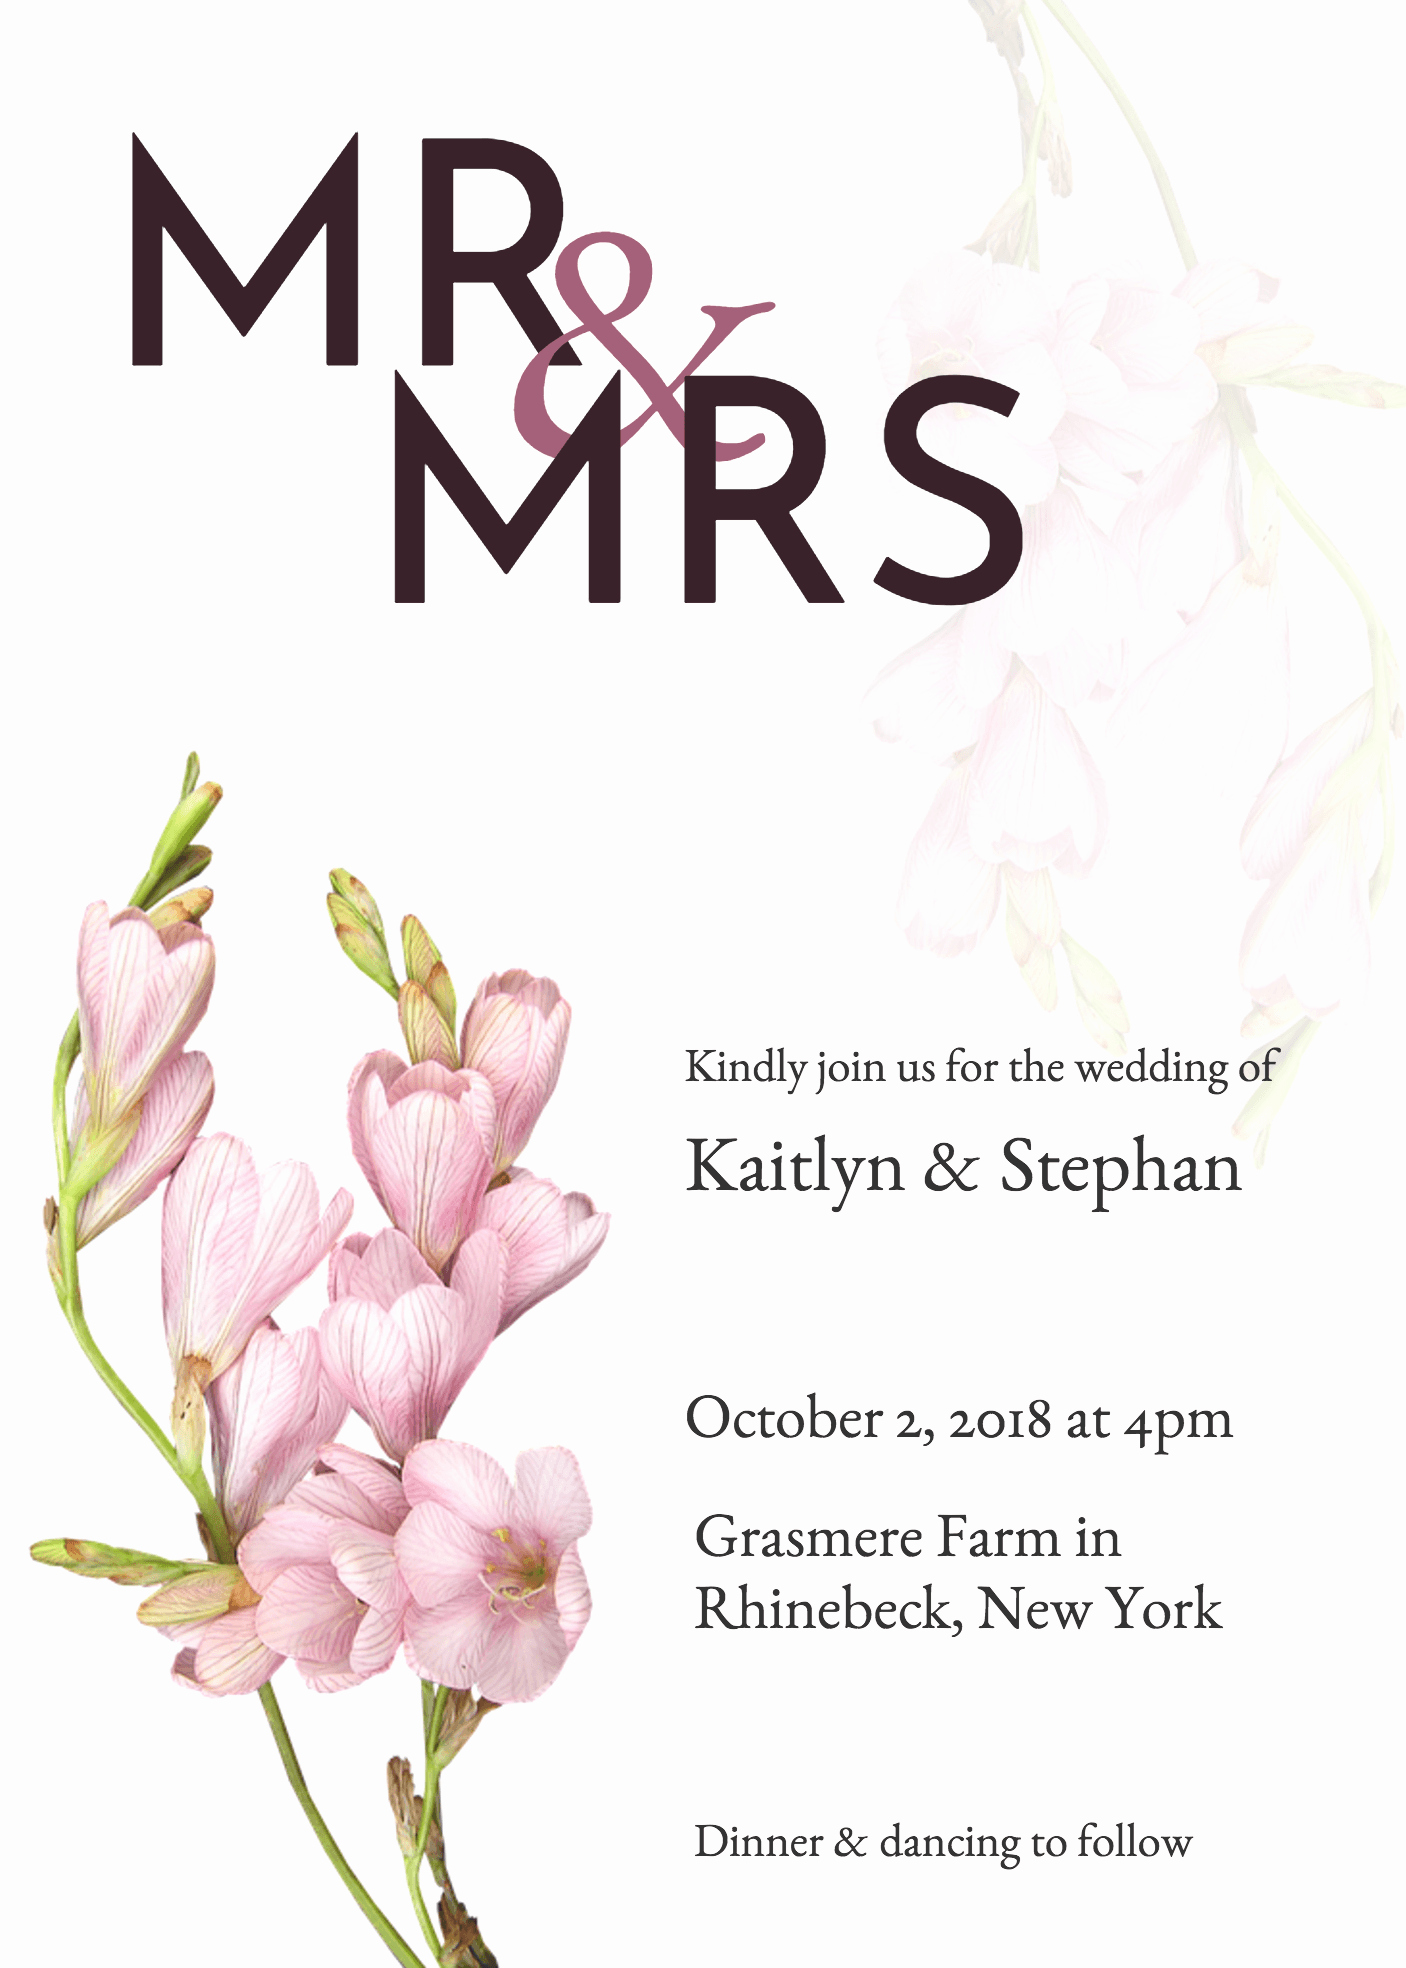 Wedding Invitation Templates Downloads Best Of 19 Diy Bridal Shower and Wedding Invitation Templates